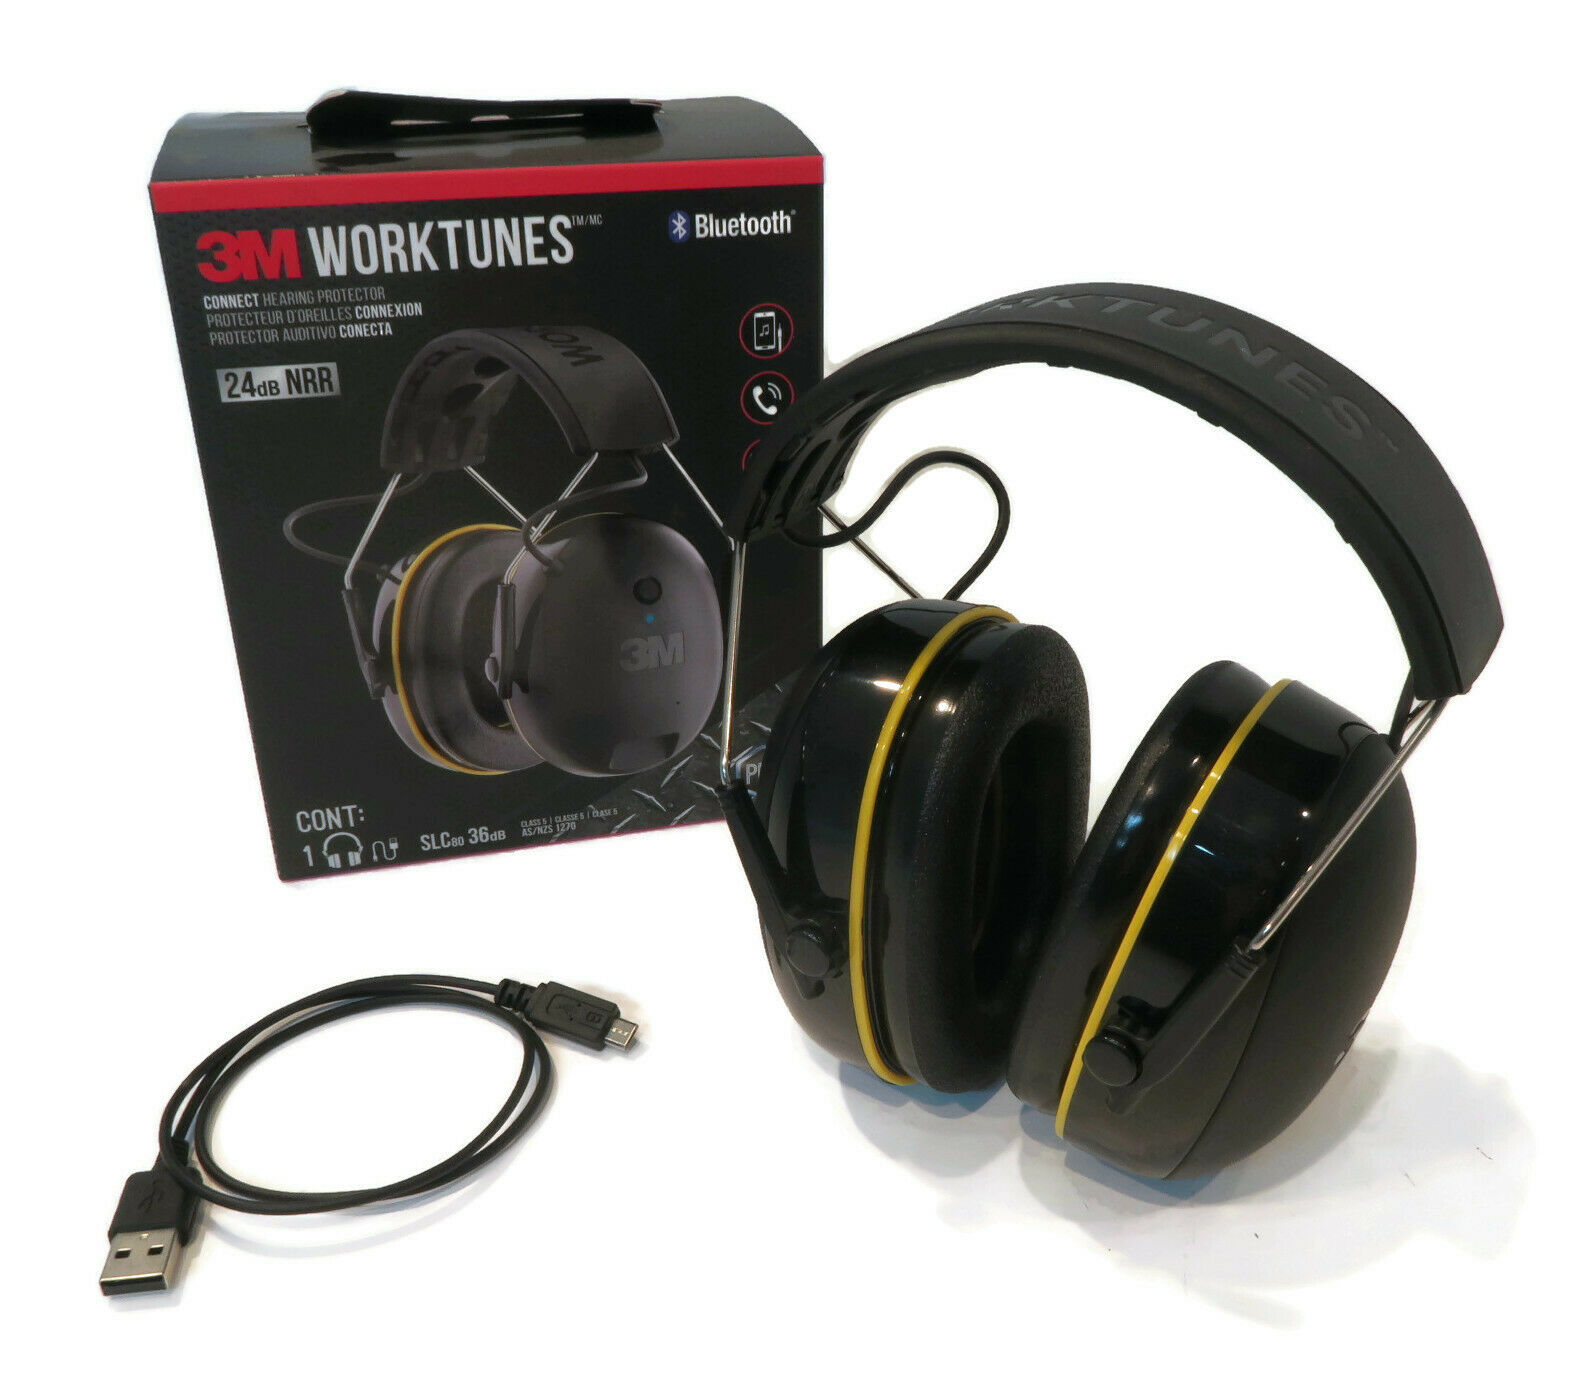 3m Worktunes Wireless Headset 24 Db With Bluetooth For Work Construction Site 193979074391 Ebay